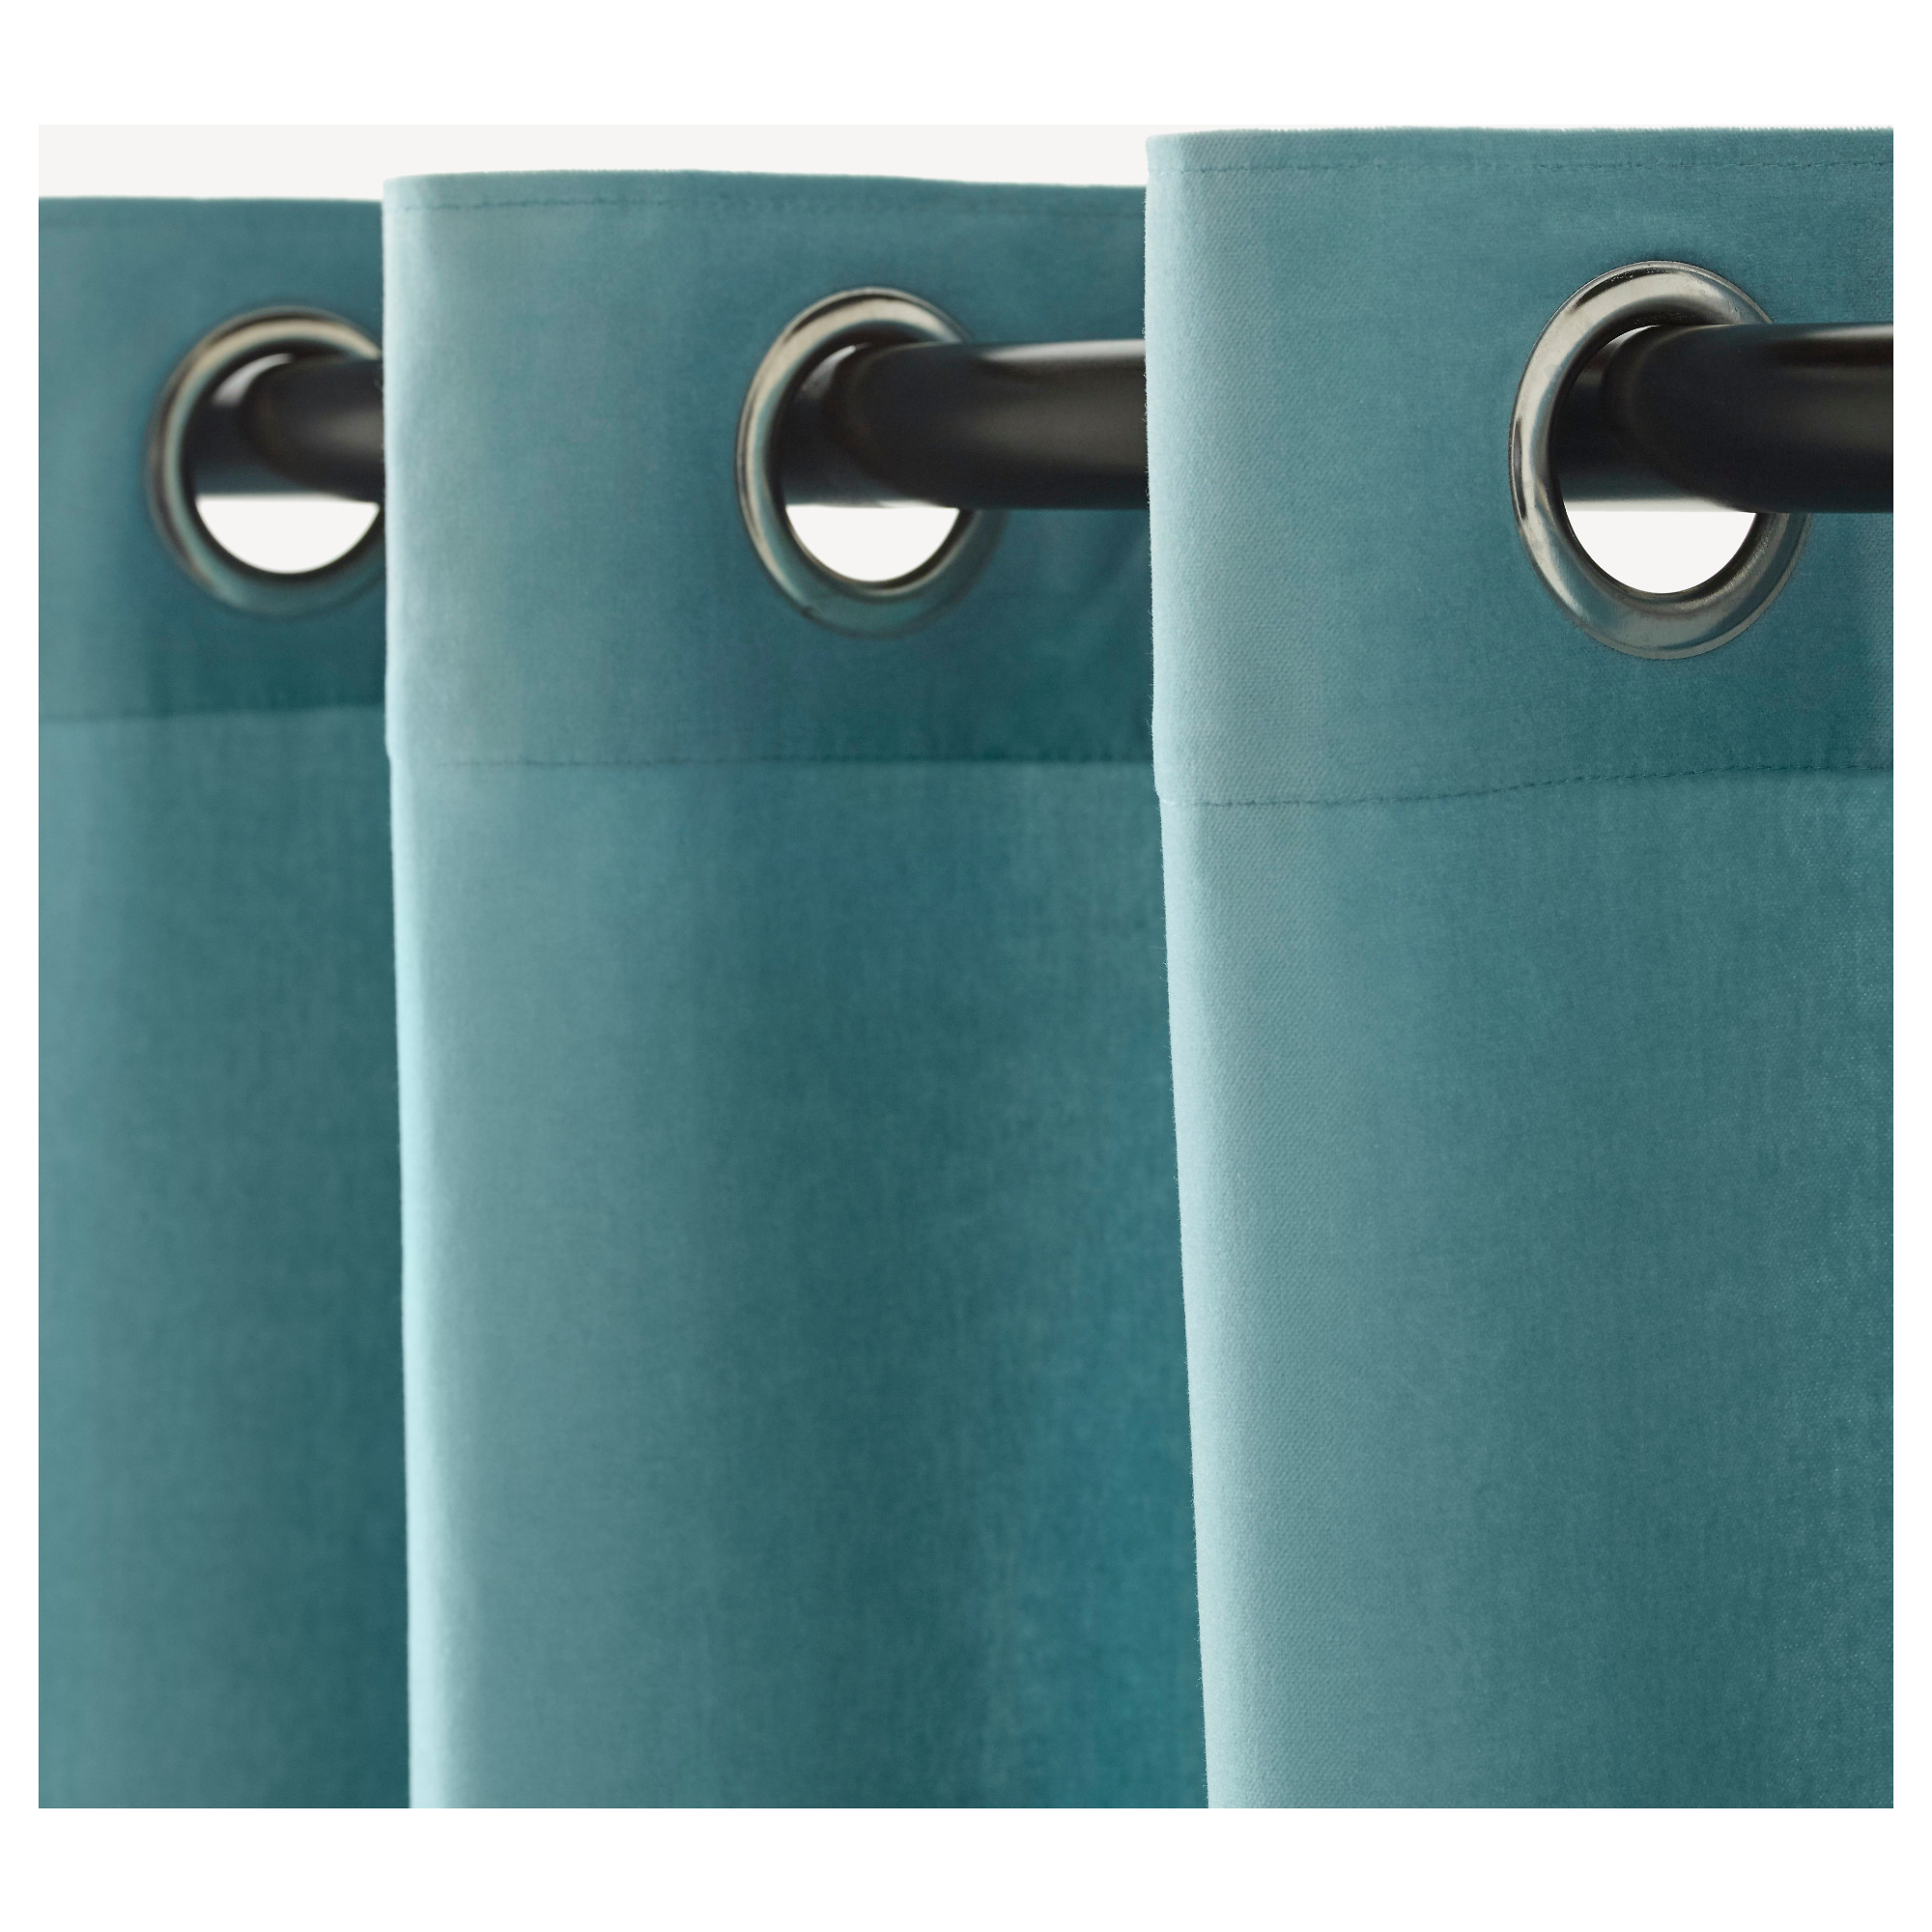 inch curtains dp shower lush turquoise home amazon curtain com kitchen lillian by decor